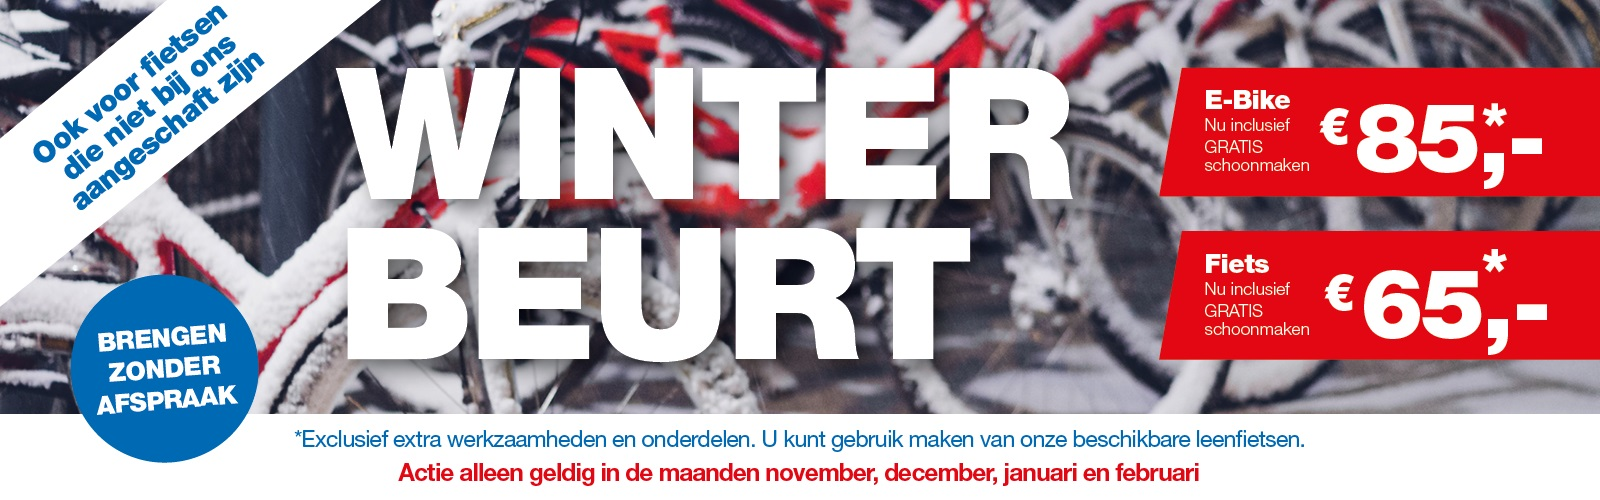 winterbeurt_website2019